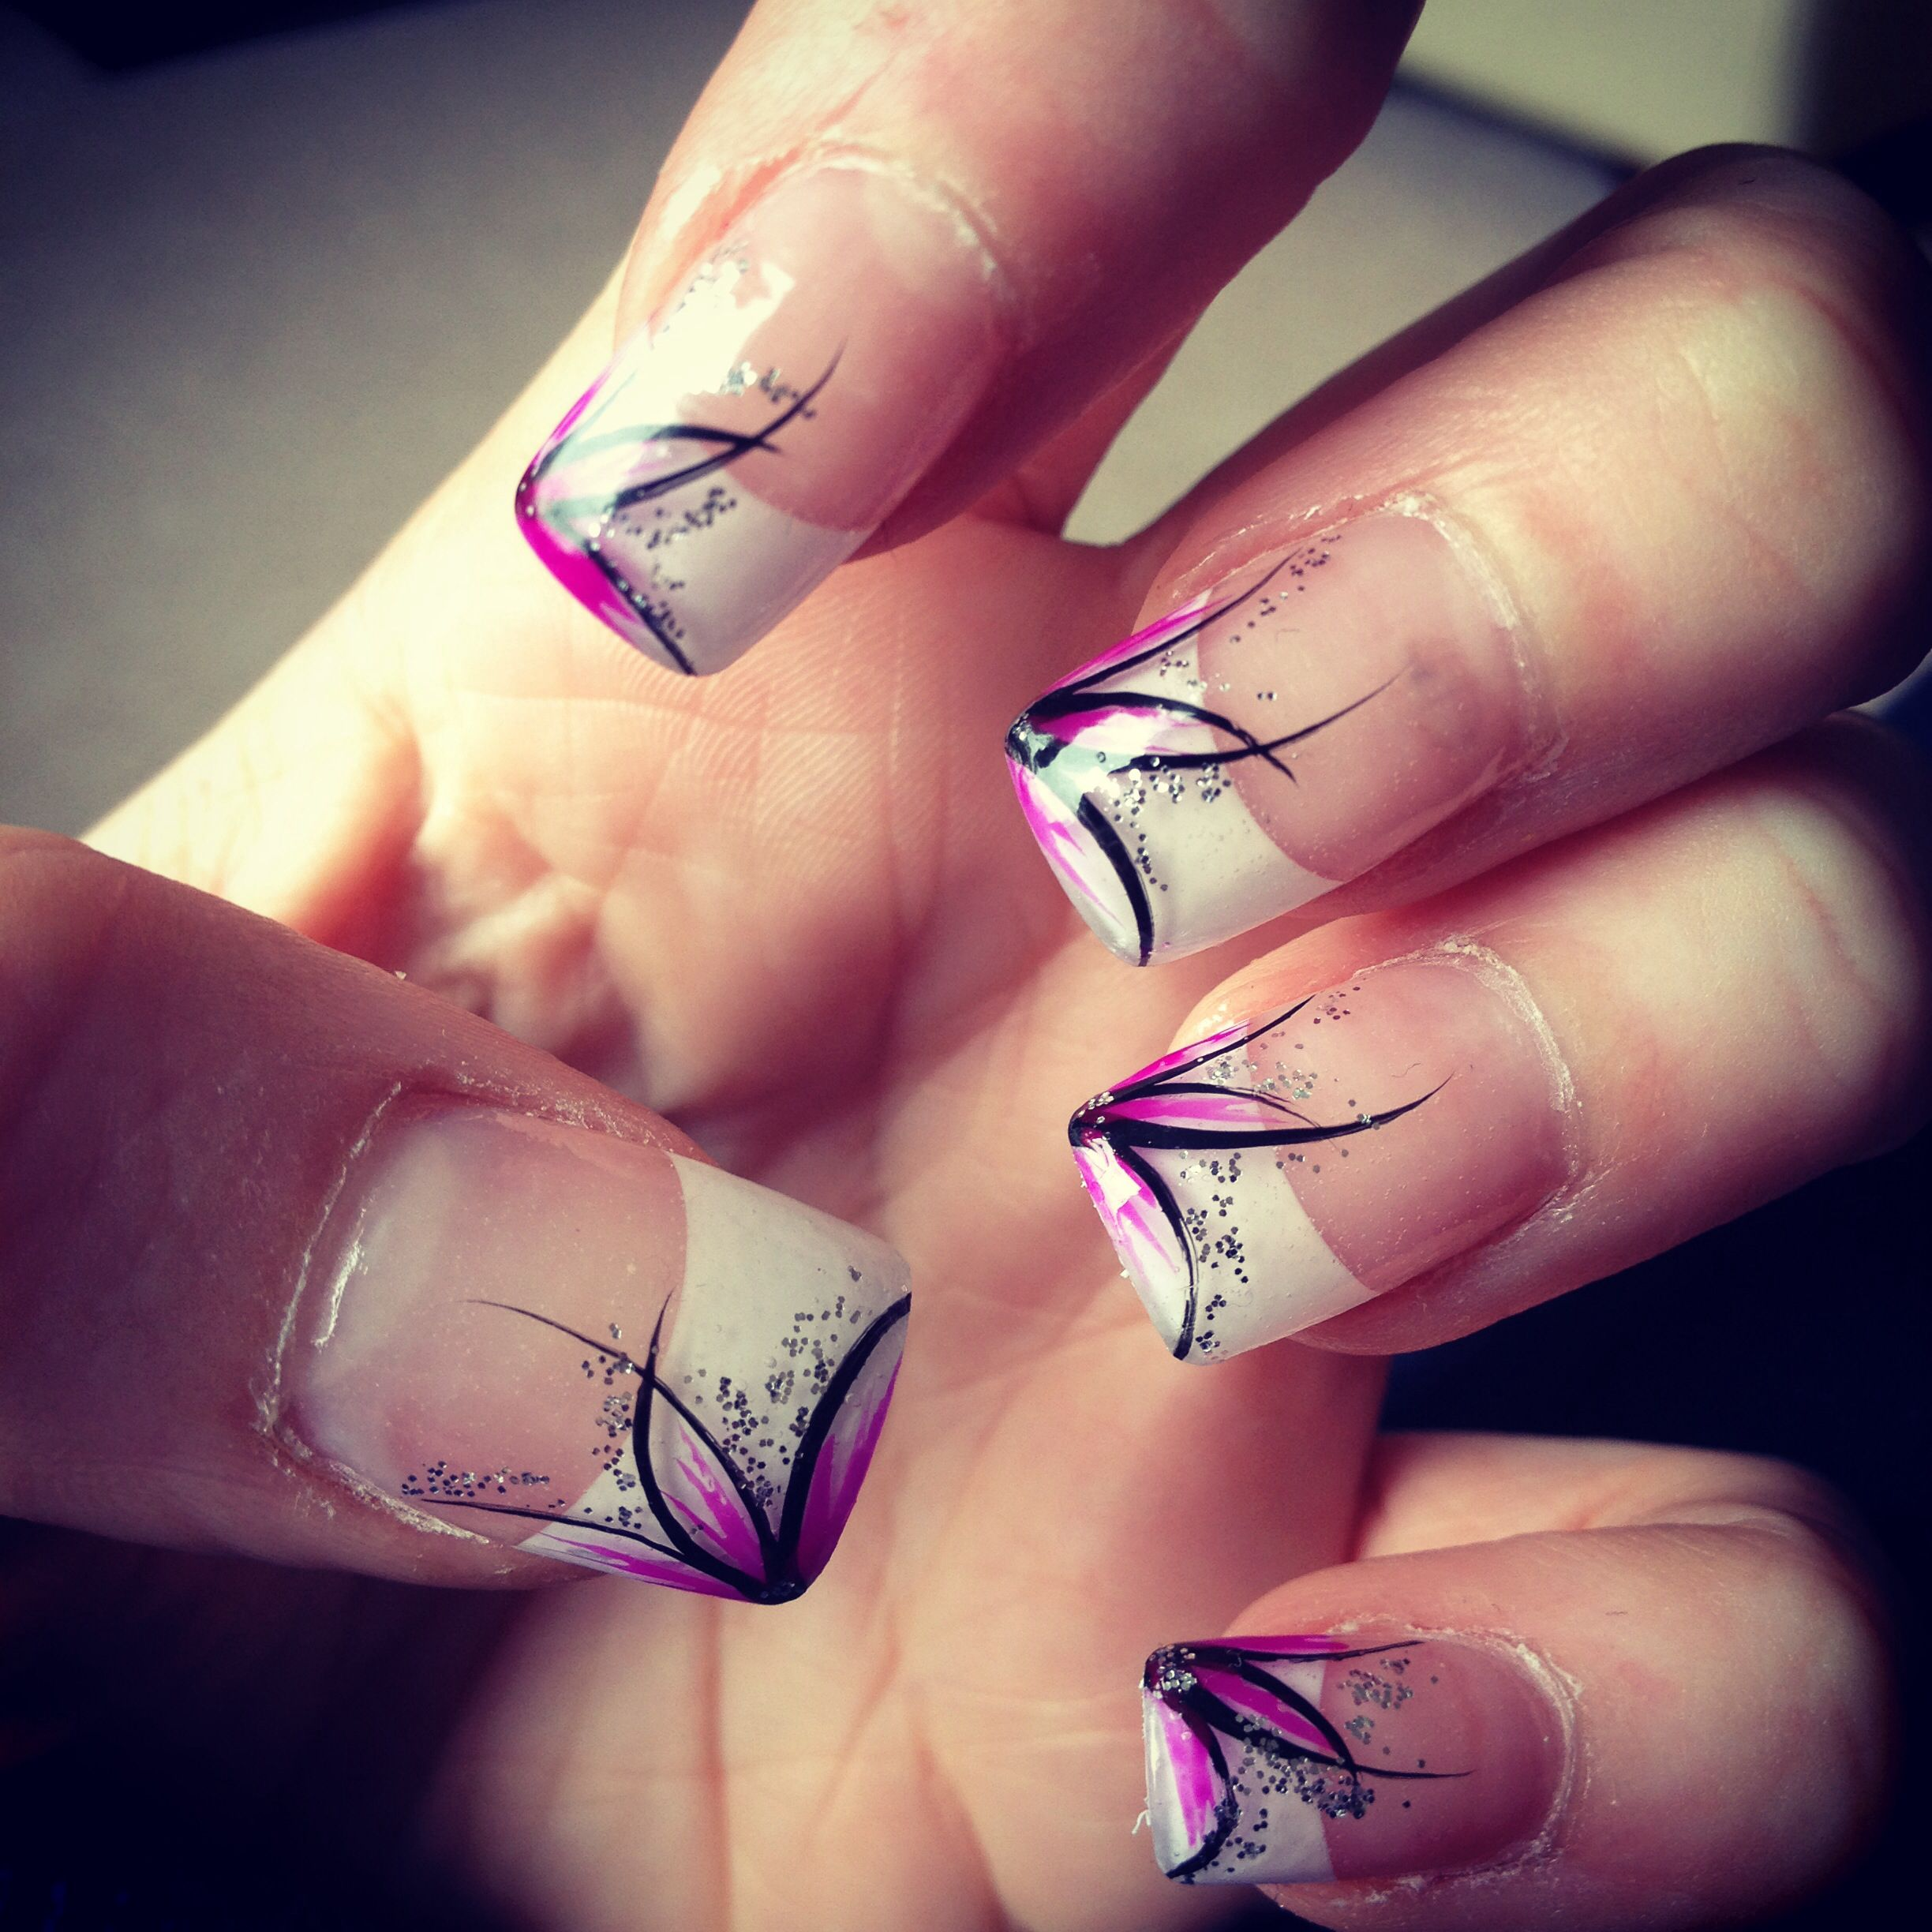 Current nail art design, with white tips | Nails | Pinterest ...